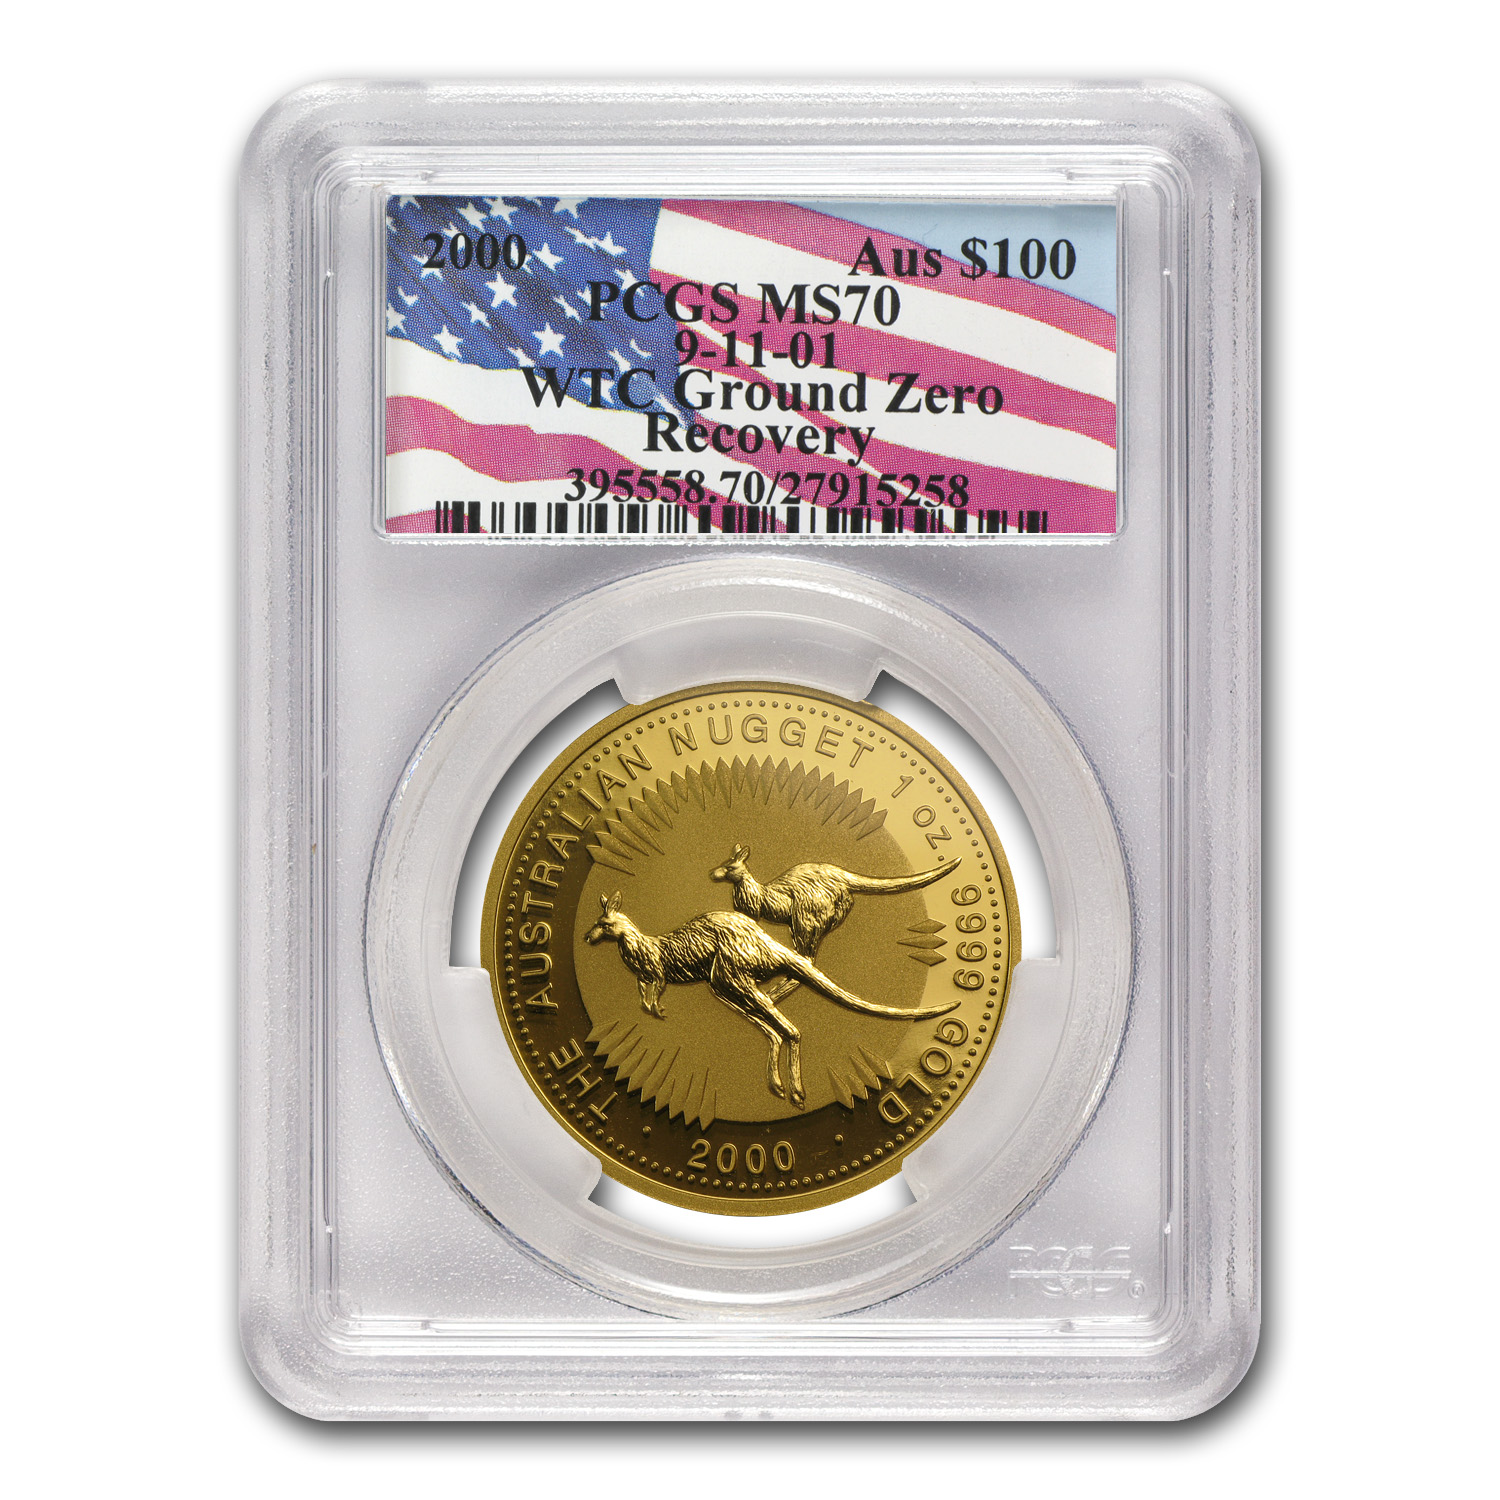 2000 1 oz Australian Gold Nugget MS-70 PCGS (WTC Ground Zero)